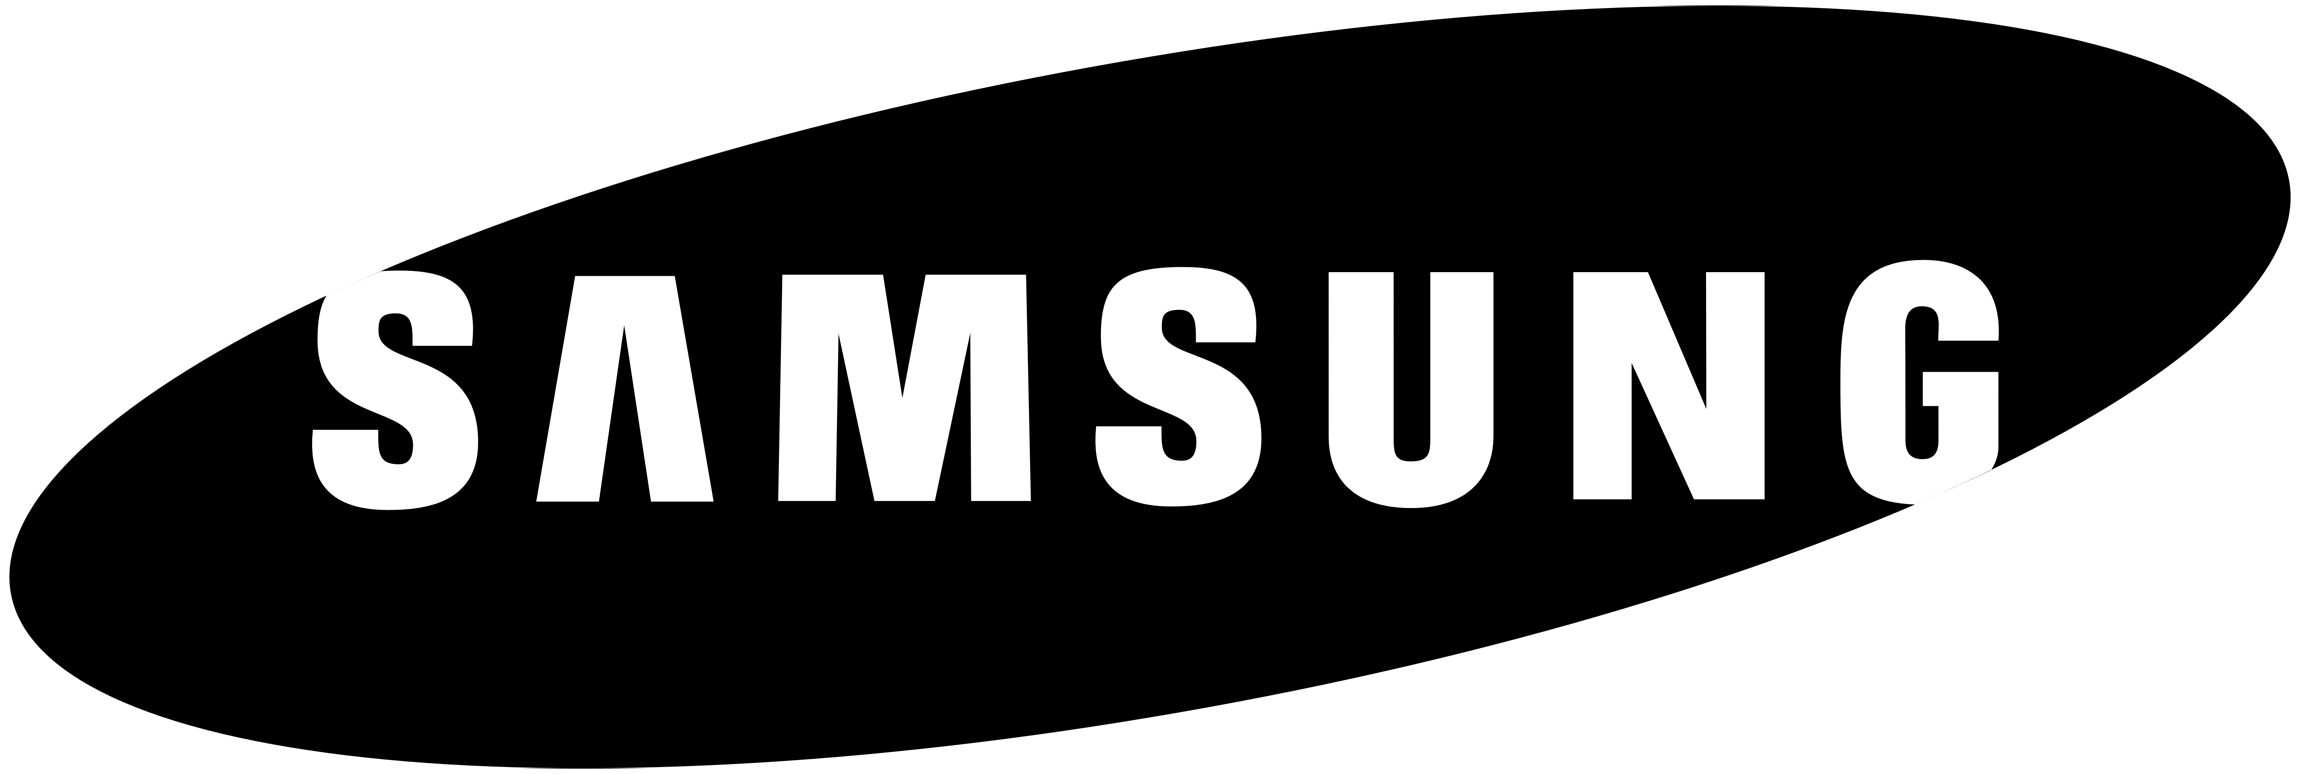 samsung logo samsung symbol meaning history and evolution